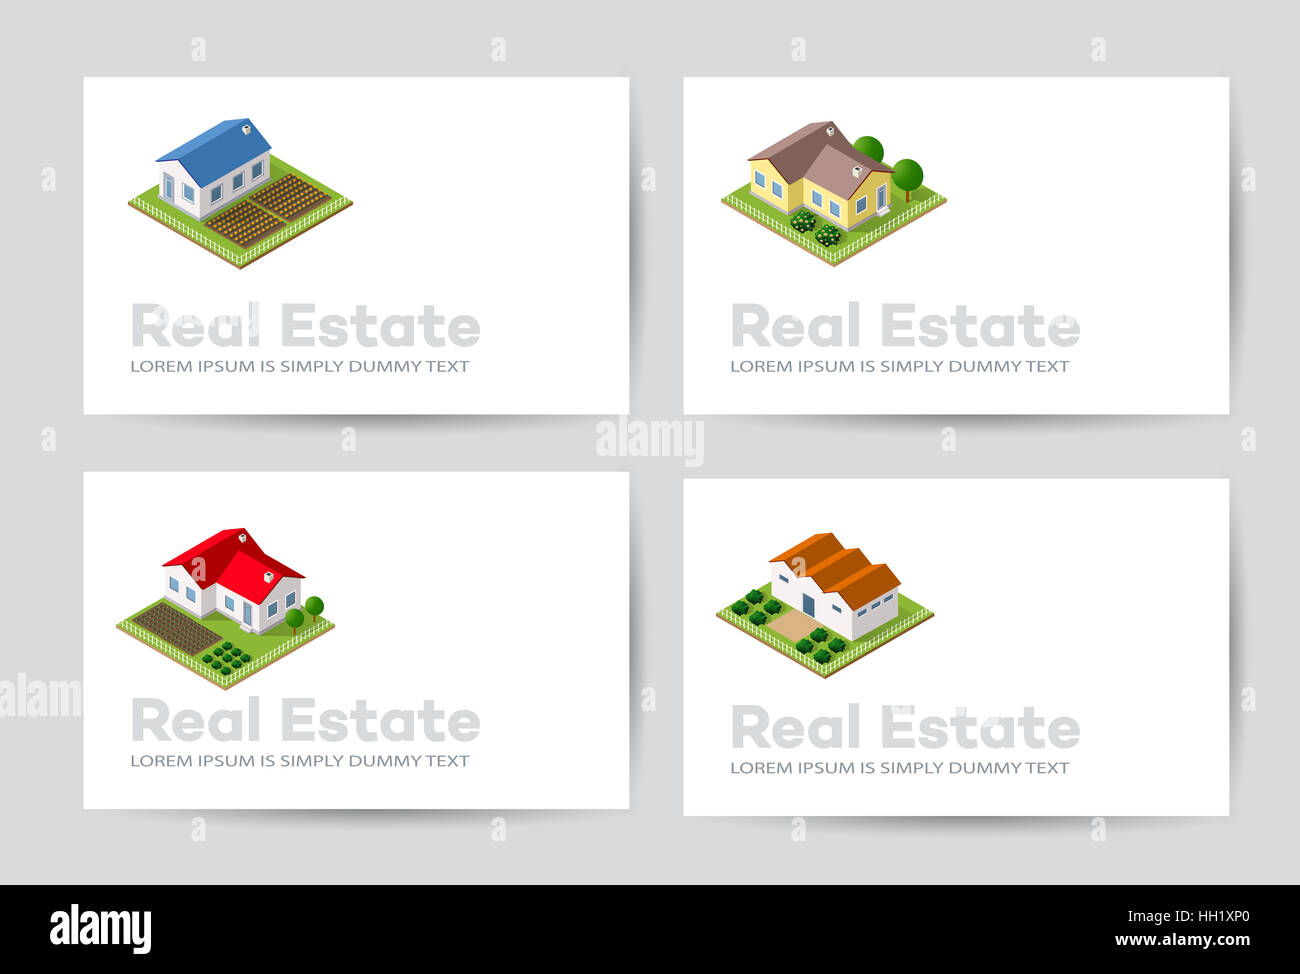 Templates of business cards for real estate agencies city portals stock photo templates of business cards for real estate agencies city portals construction firms and design presentations magicingreecefo Image collections